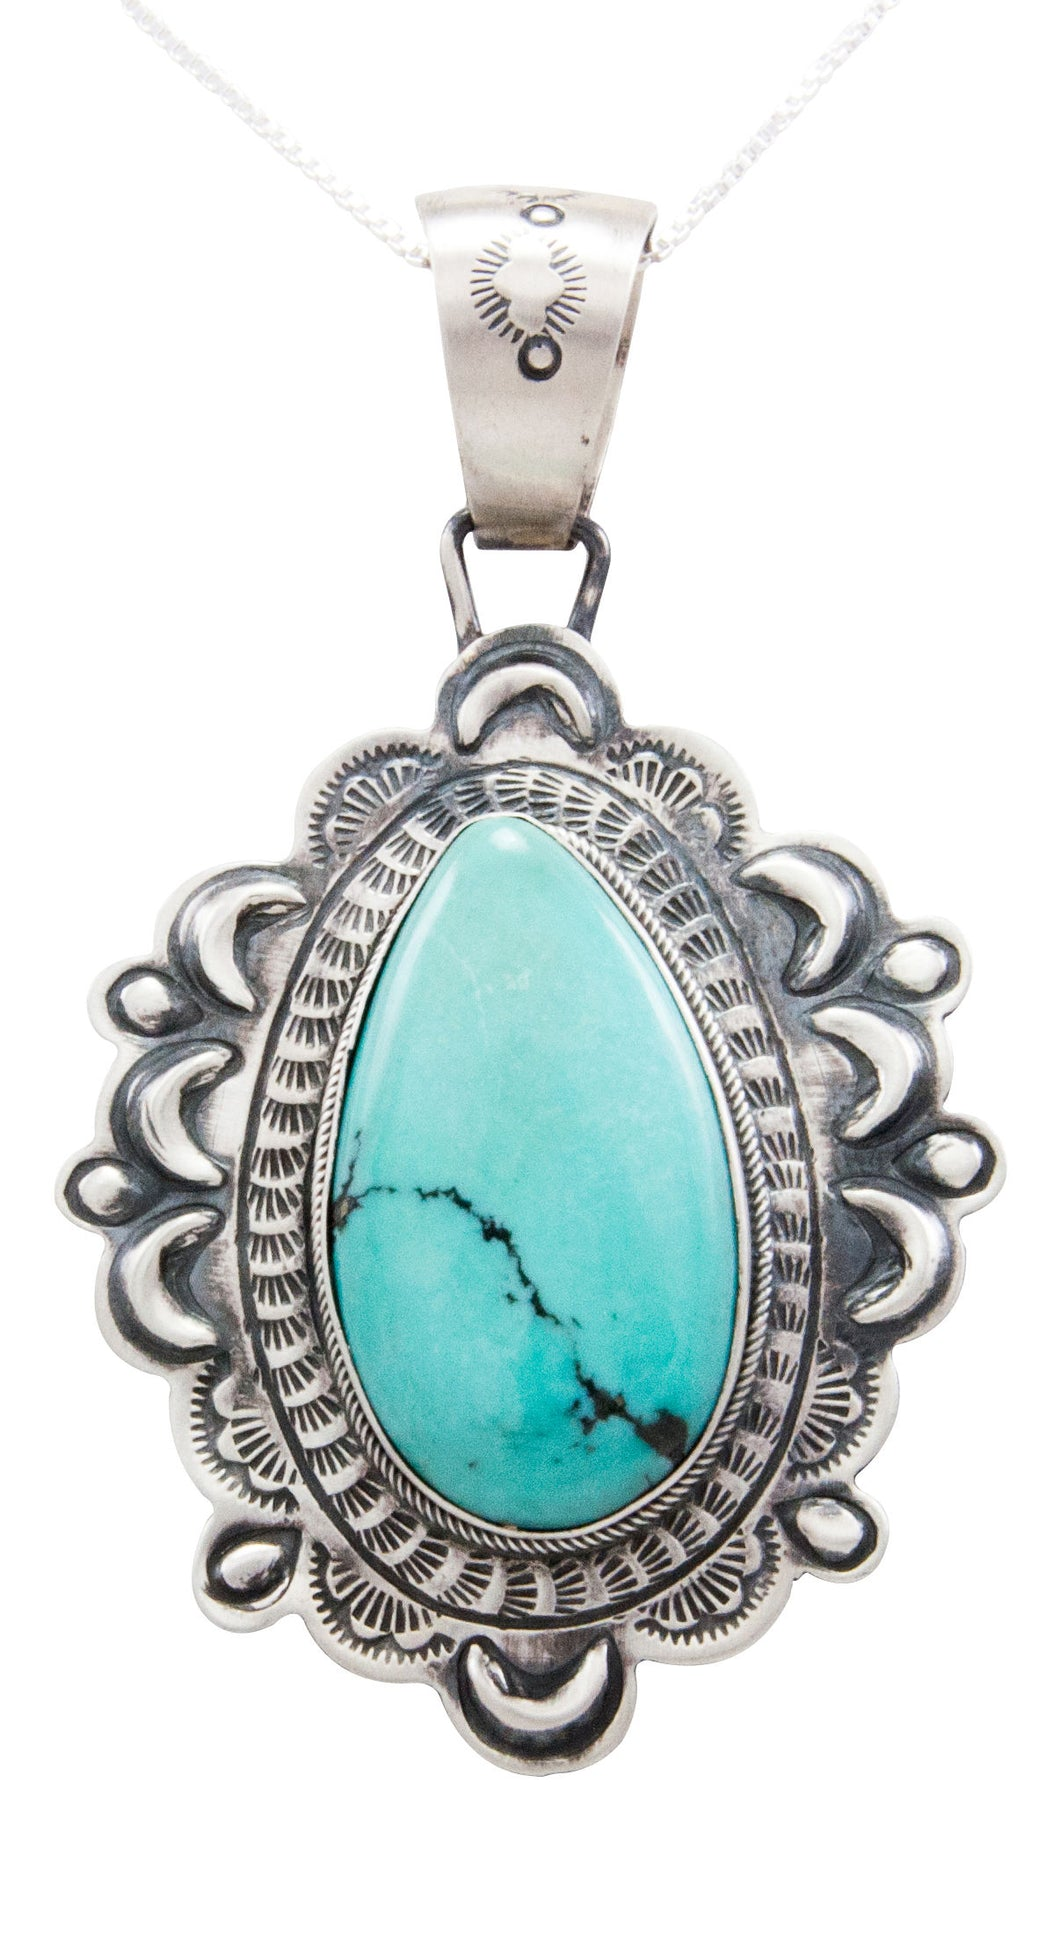 Navajo Native American Blue Moon Turquoise Pendant Necklace by Beard SKU232588